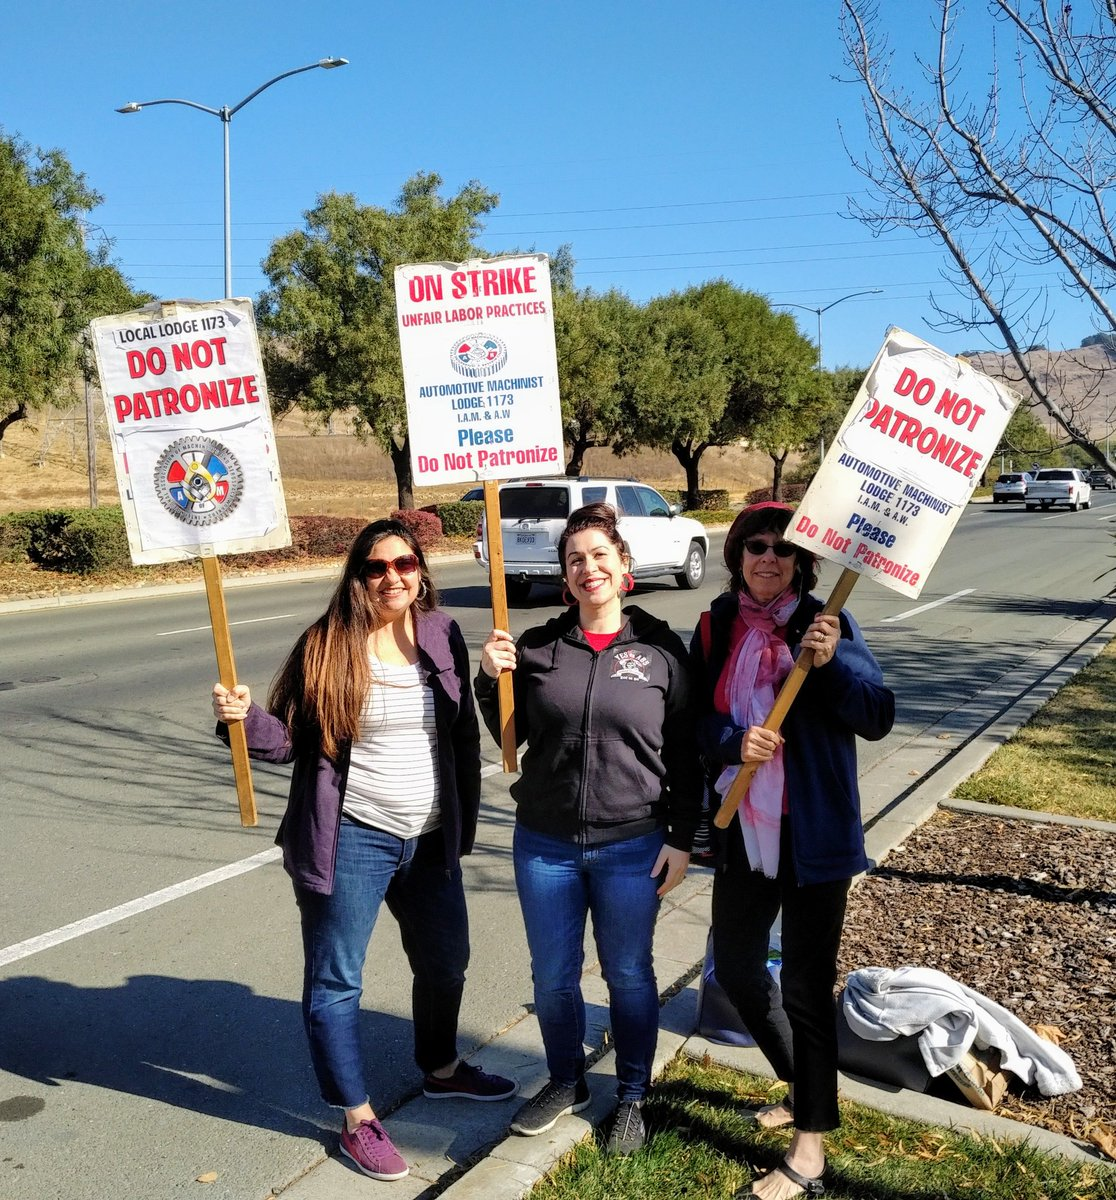 Spend your Saturday with your sisters on the picket line telling @ToyotaVallejoCA to give @IAM mechanics a fair contract!  @calaborguild #UnionStrong <br>http://pic.twitter.com/AYAL1dYPyq